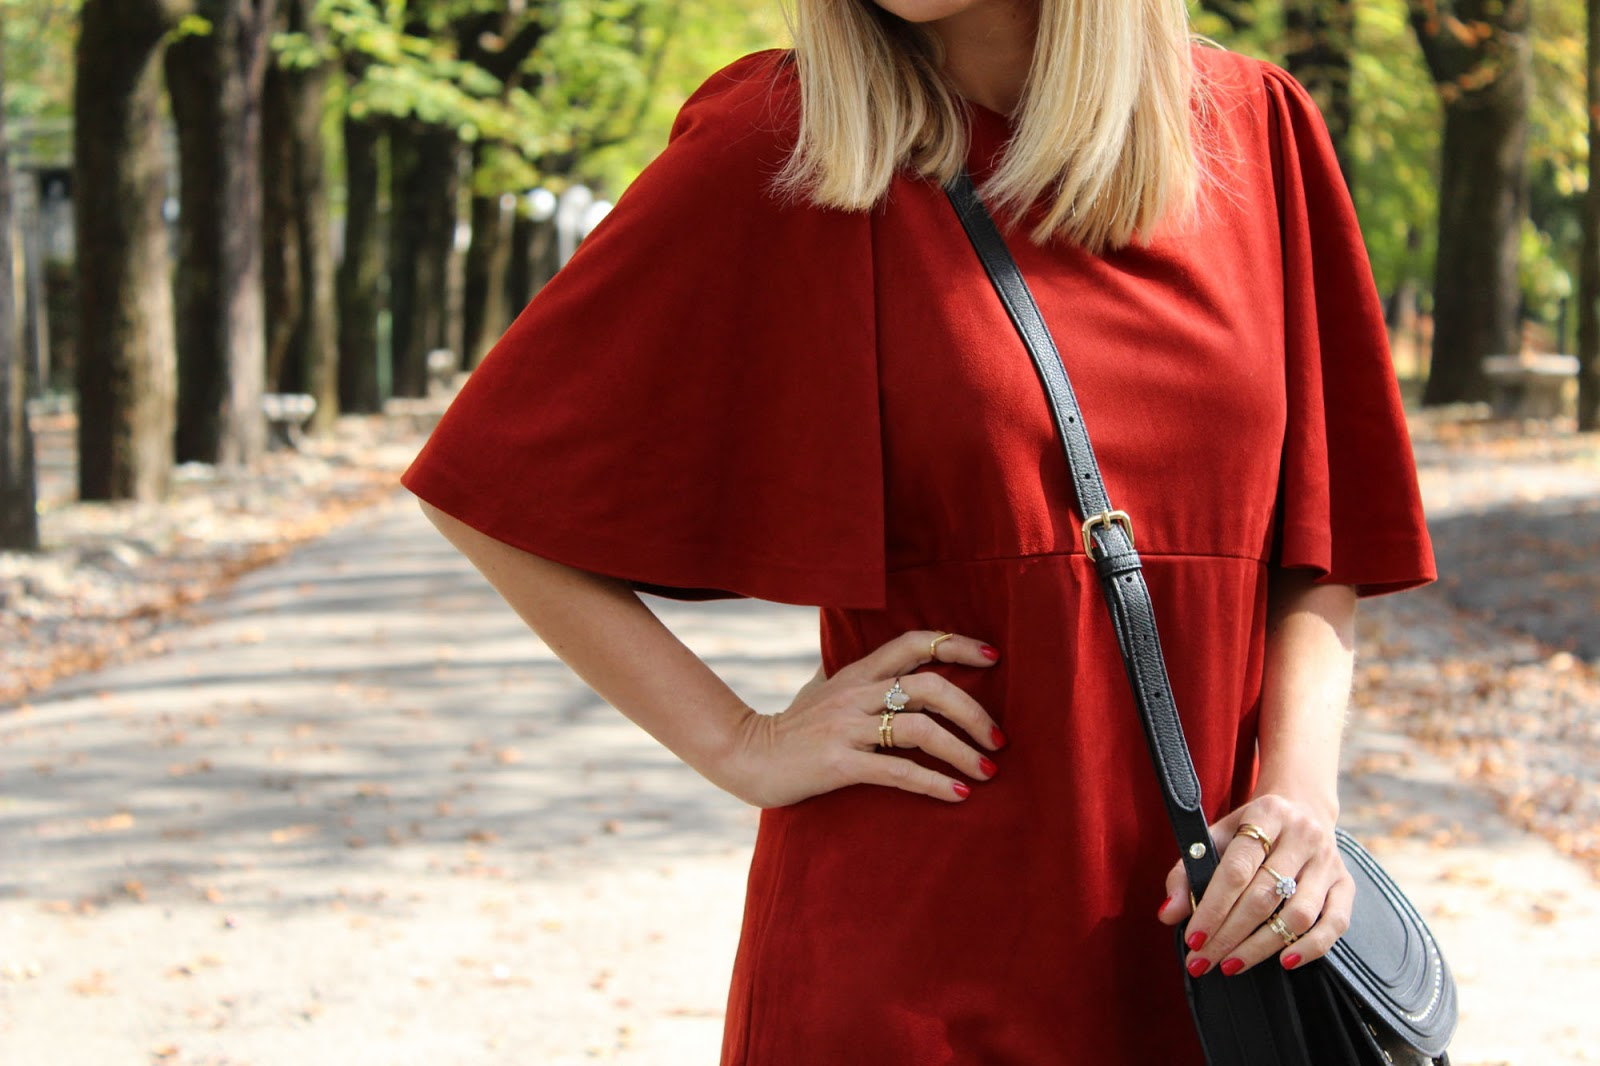 Eniwhere Fashion - Zara red dress